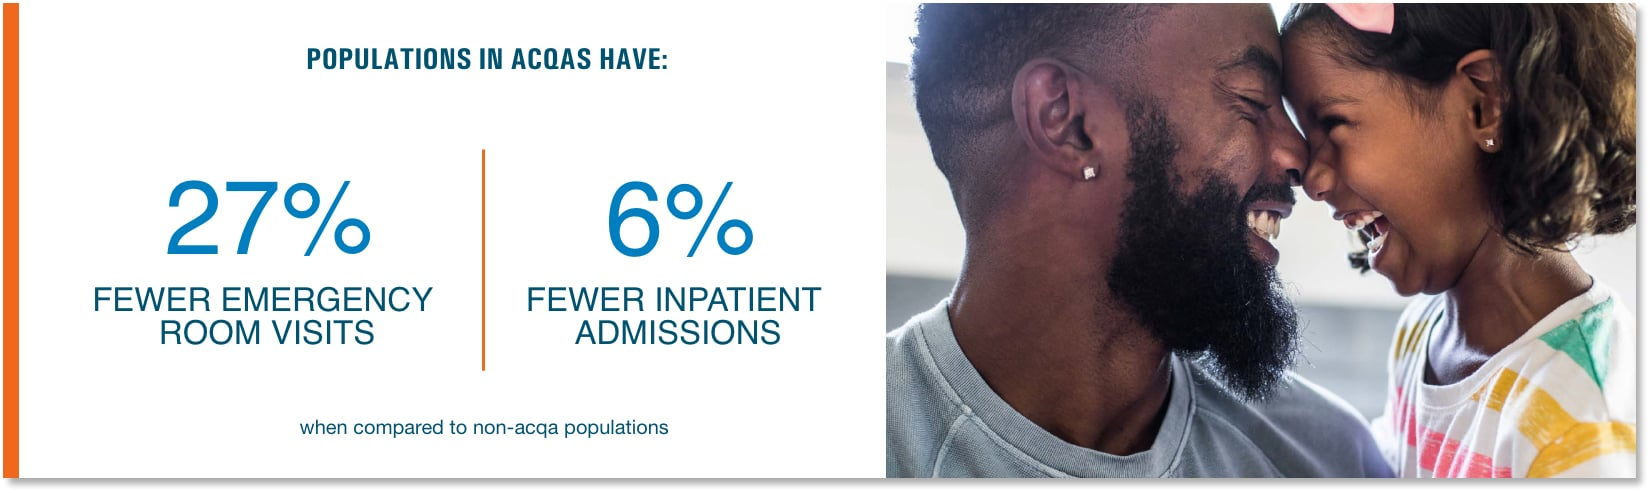 Populations in ASCAS have: 27% fewer emergency room visits and 6% fewer inpatient admissions when compared to non-ACQAS populations.